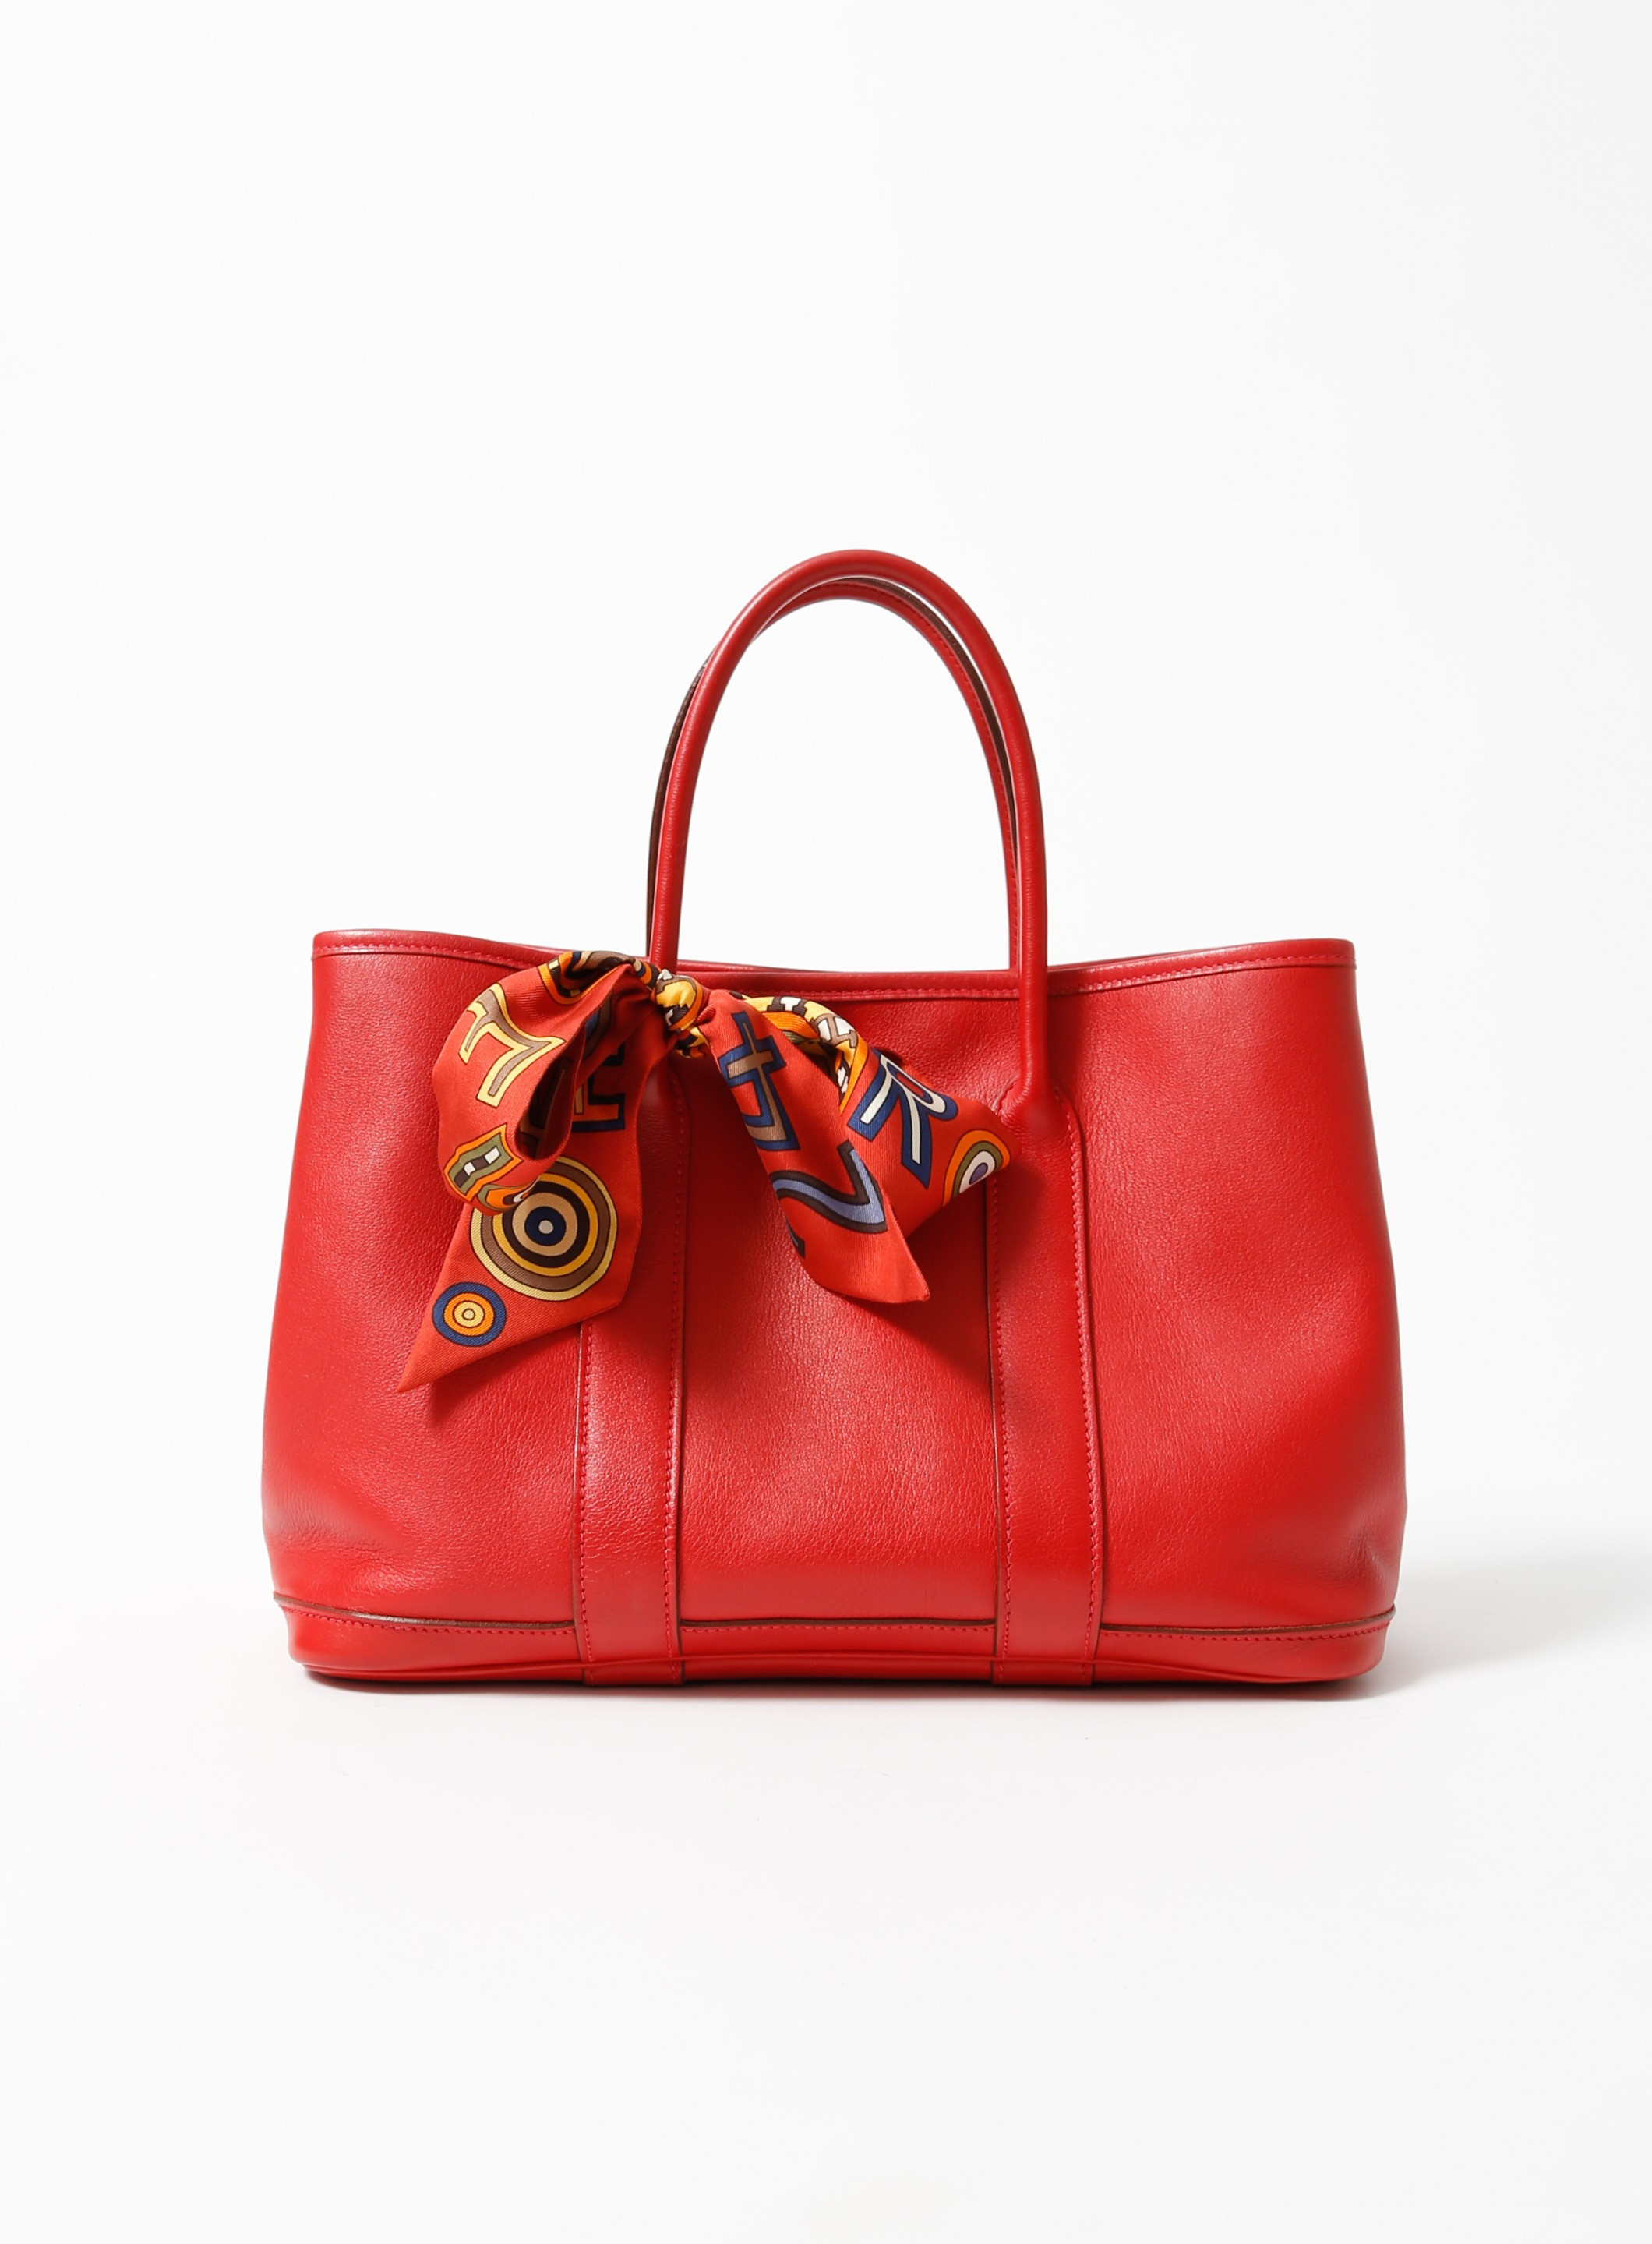 e5de37df40f98 Limited Edition Garden Party Bag